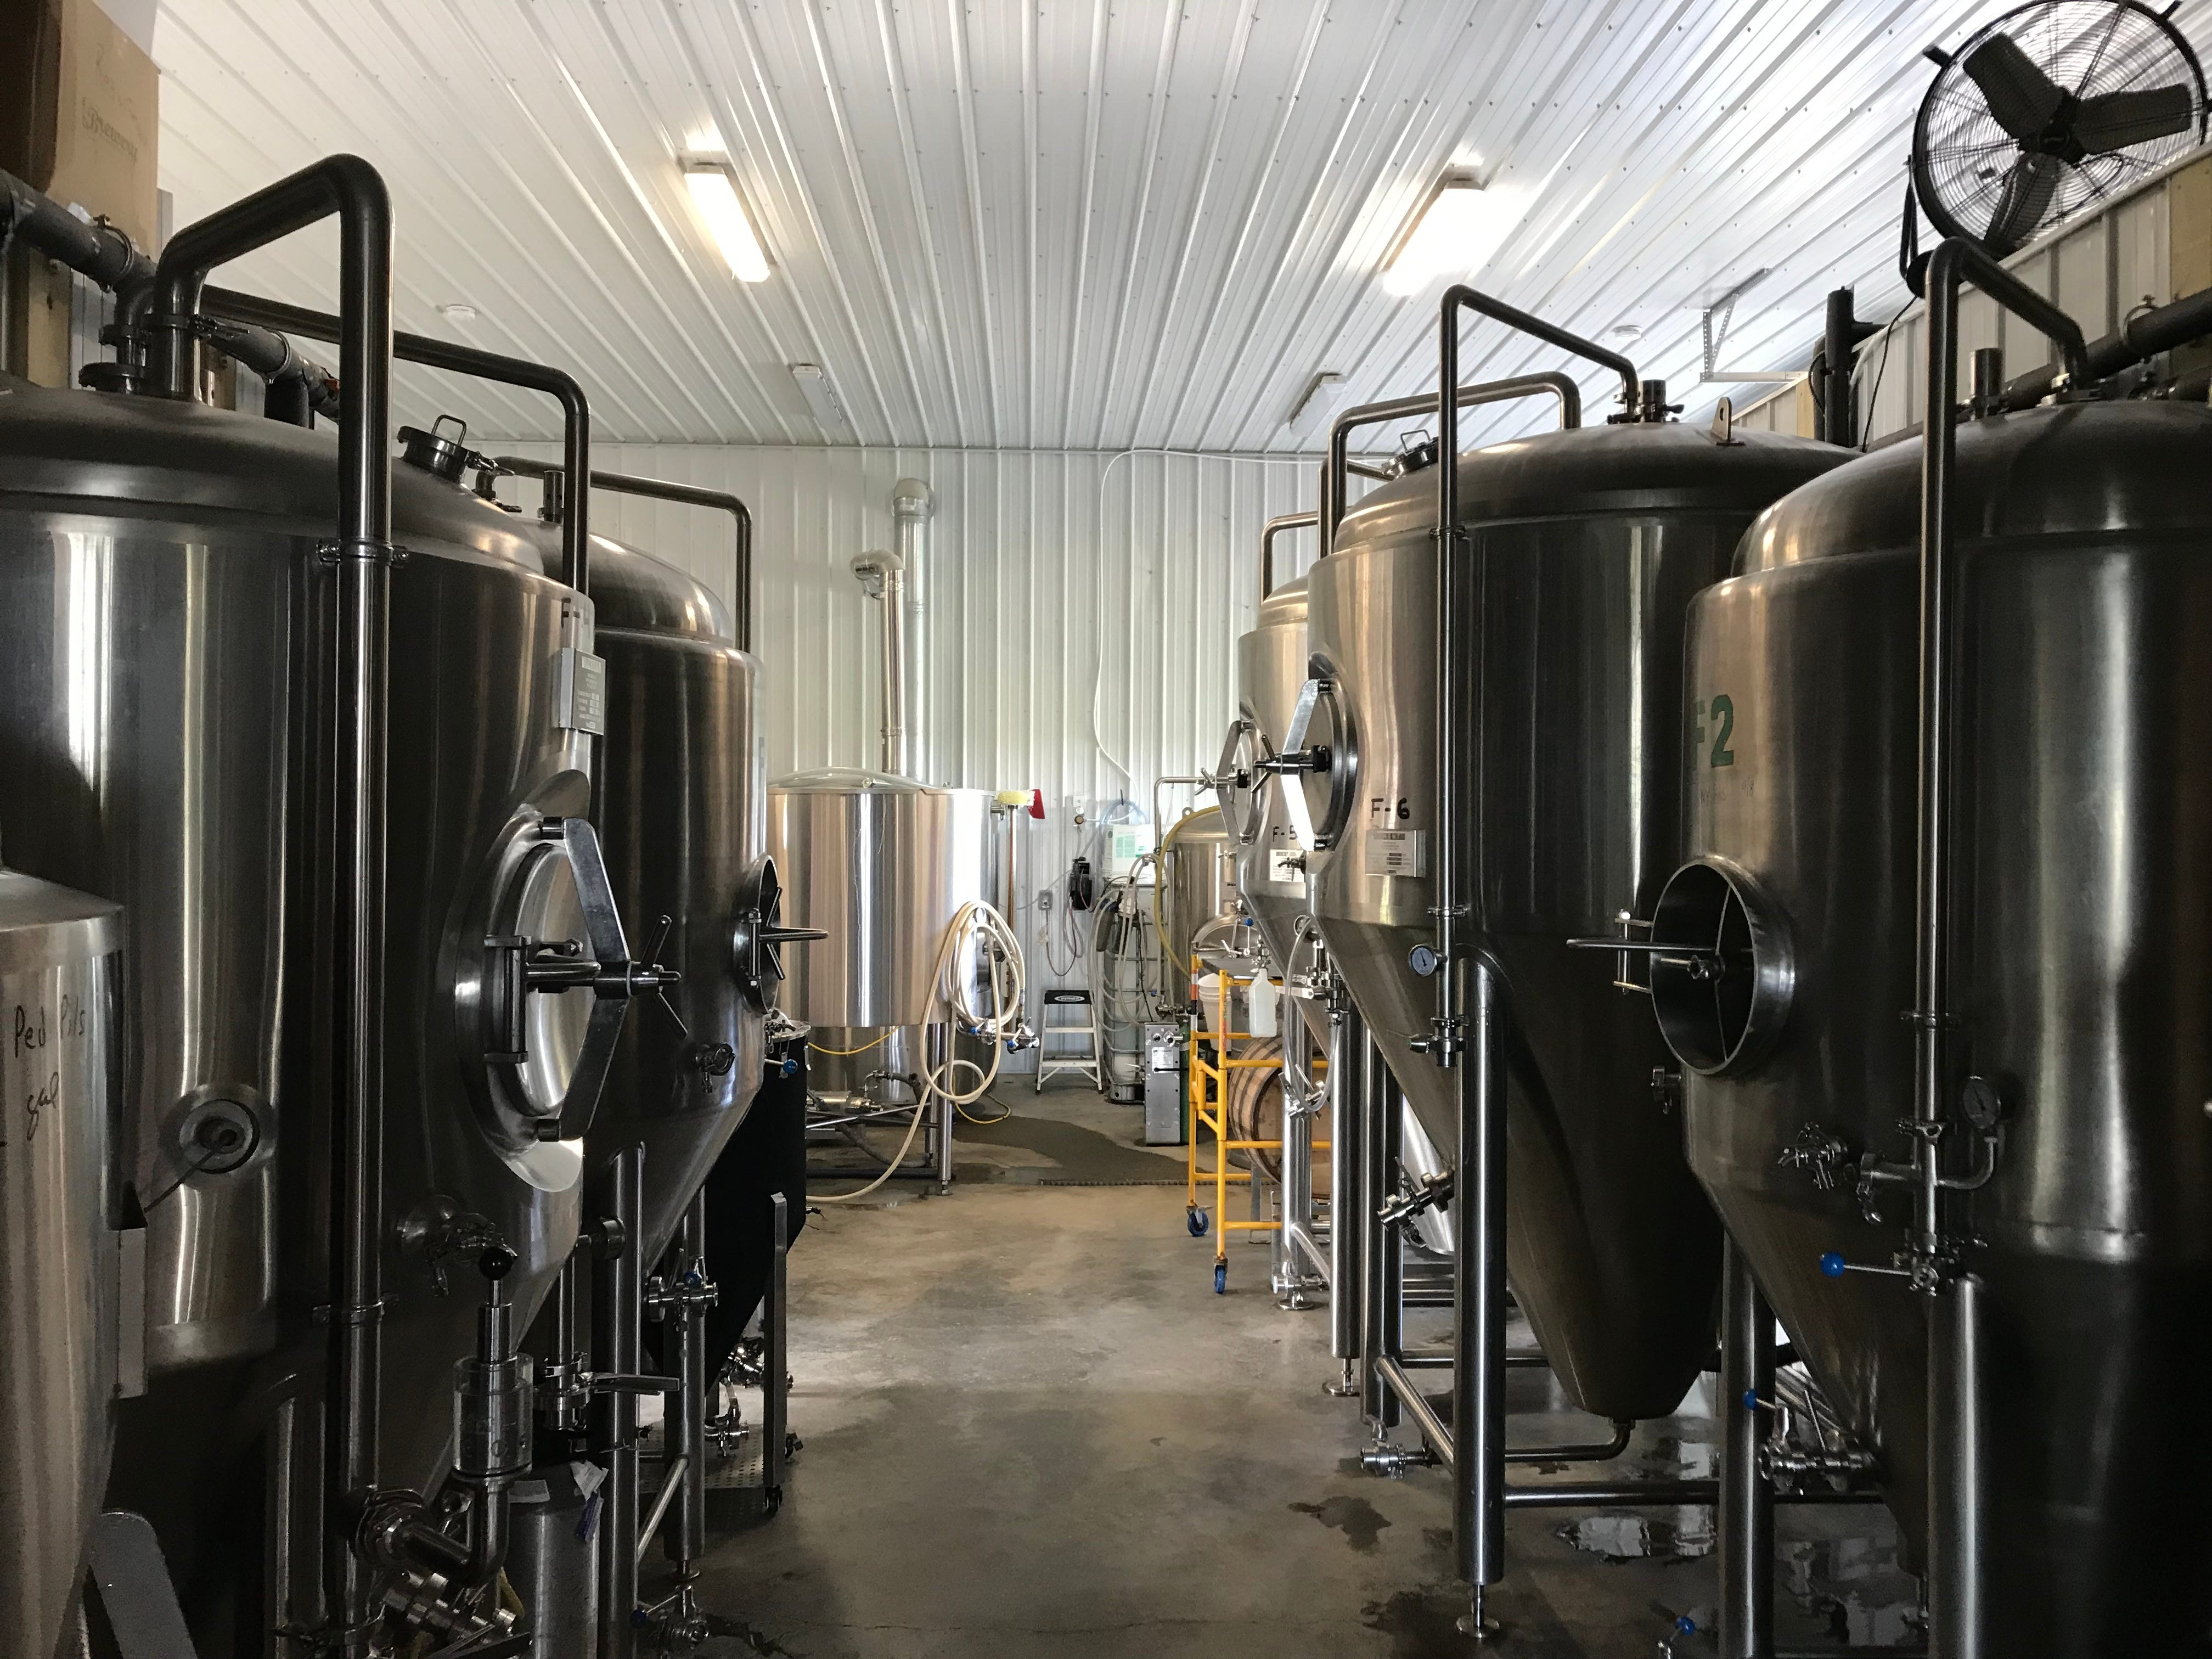 The 7-barrel brewhouse at Steuben Brewing.